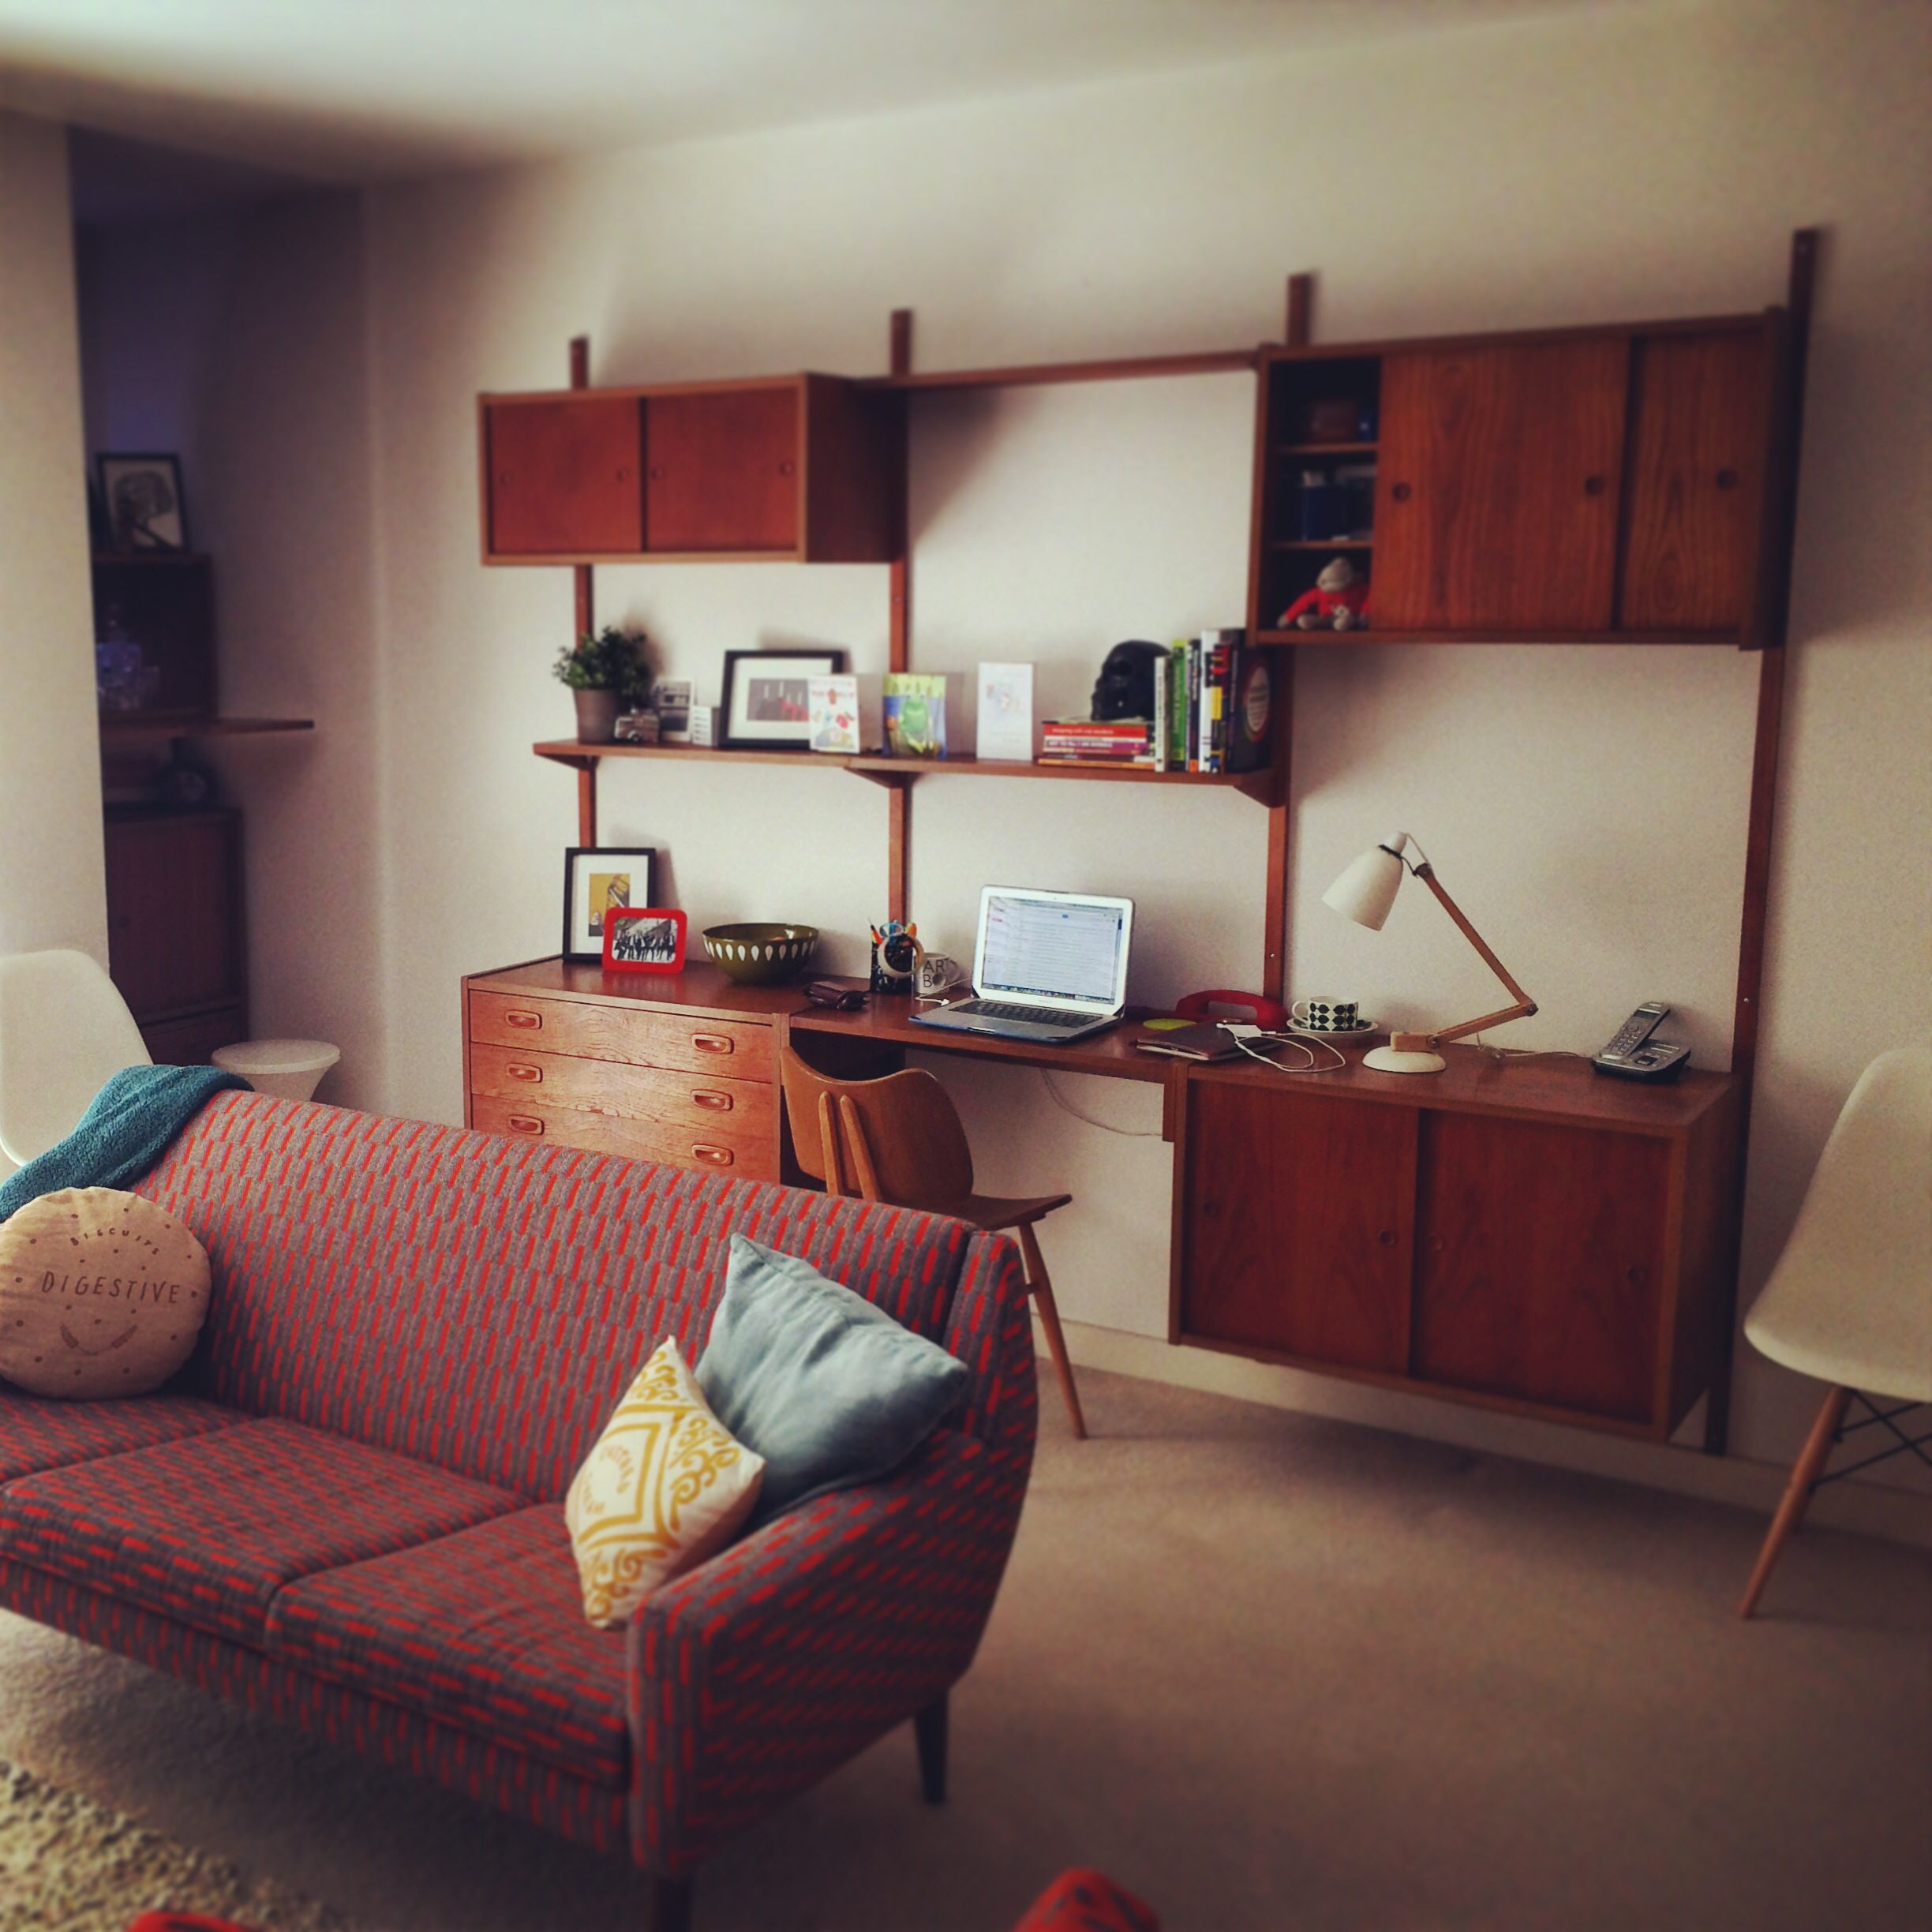 Butterfly chair original - Danish Ps System Wall Unit Eleanor Pritchard 60s Sofa Original Ercol Butterfly Chair